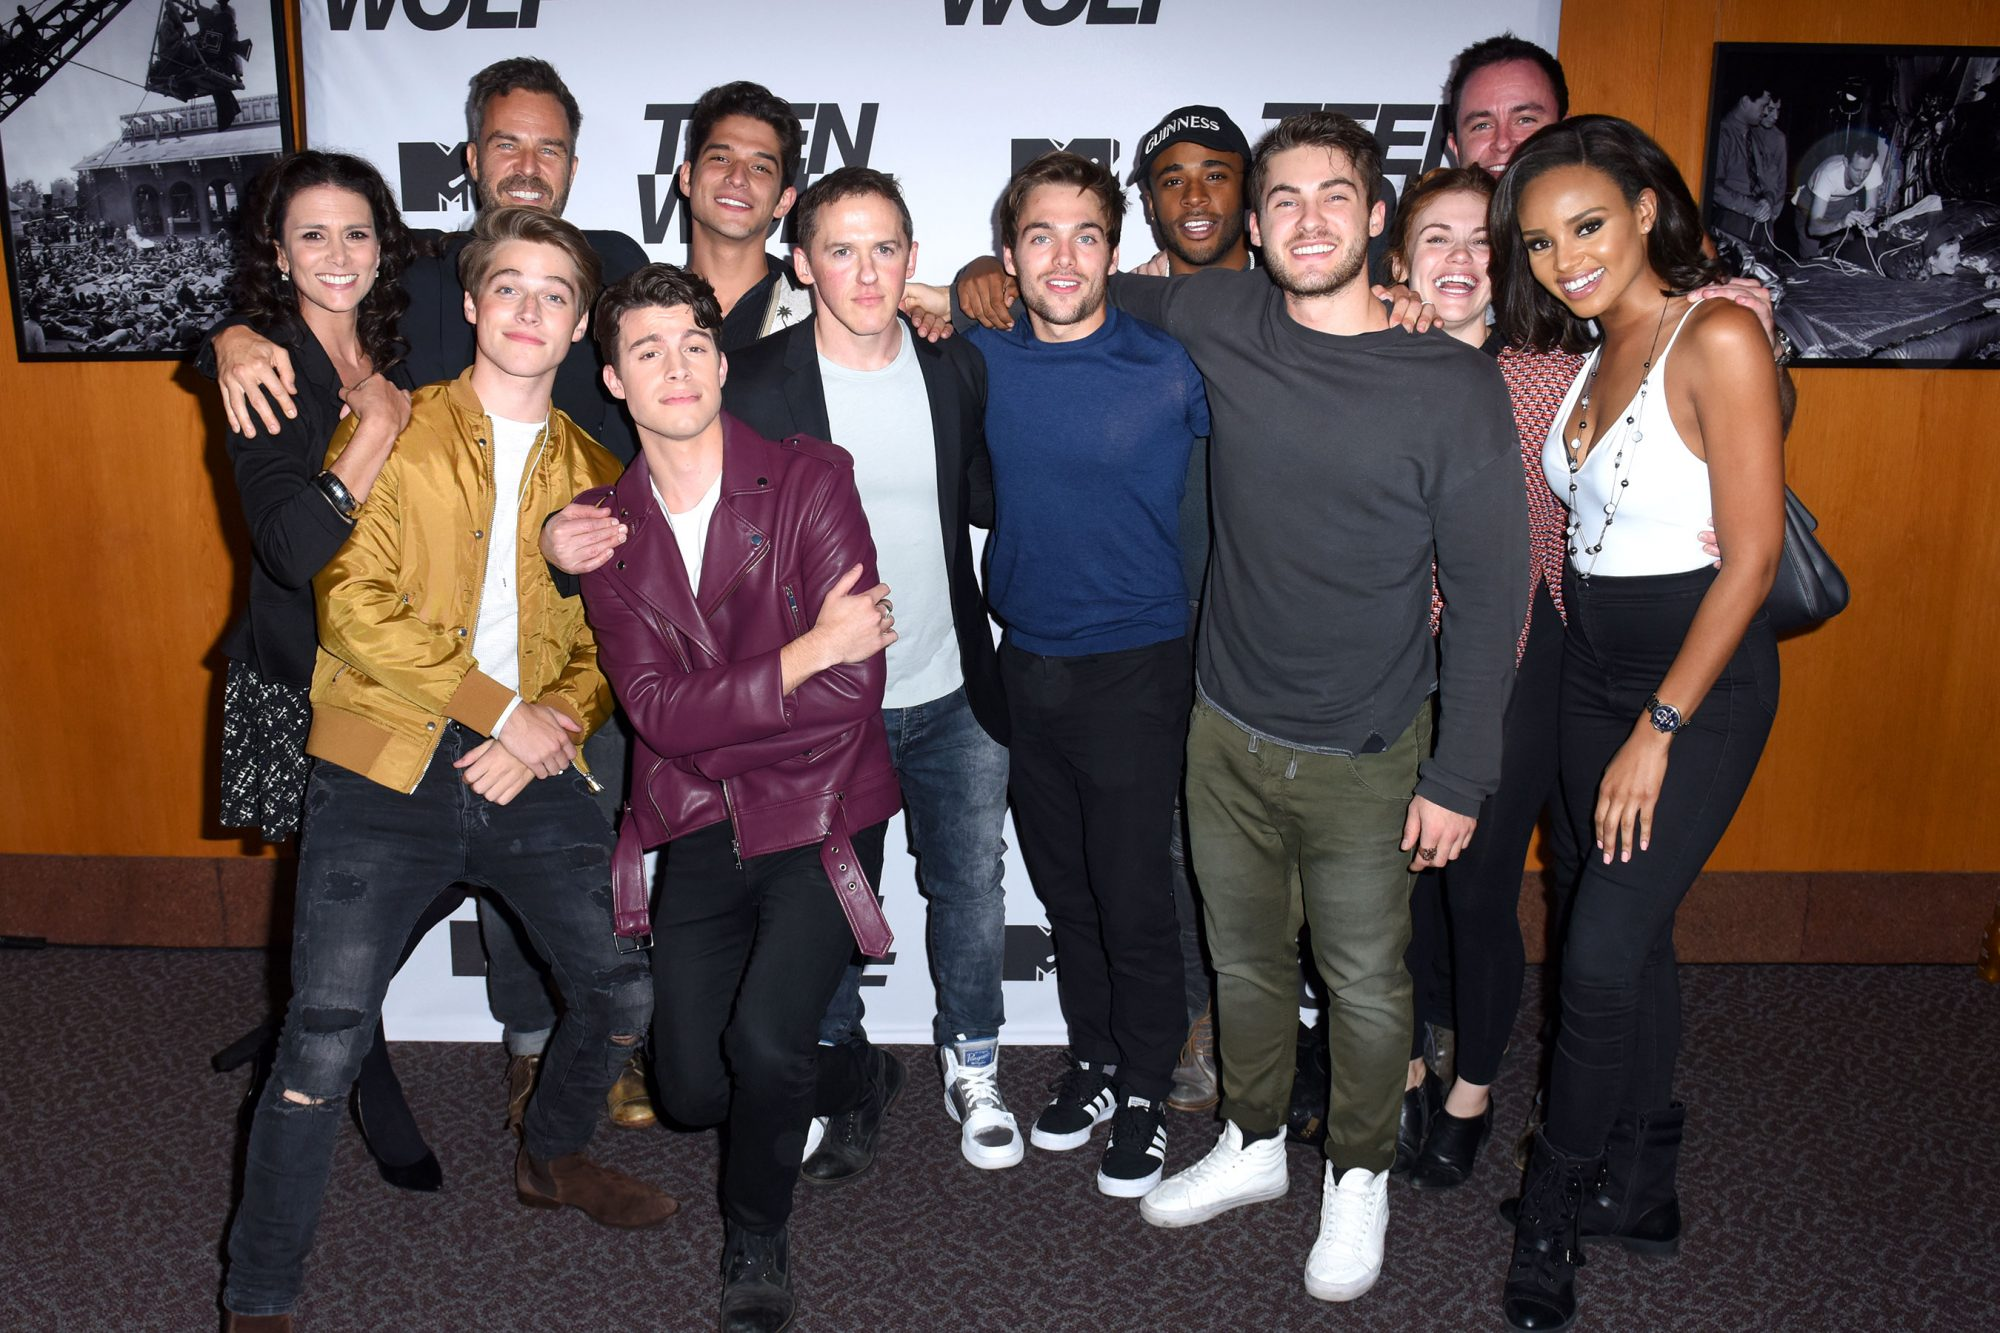 MTV Teen Wolf 100th Episode Screening and Series Wrap Party